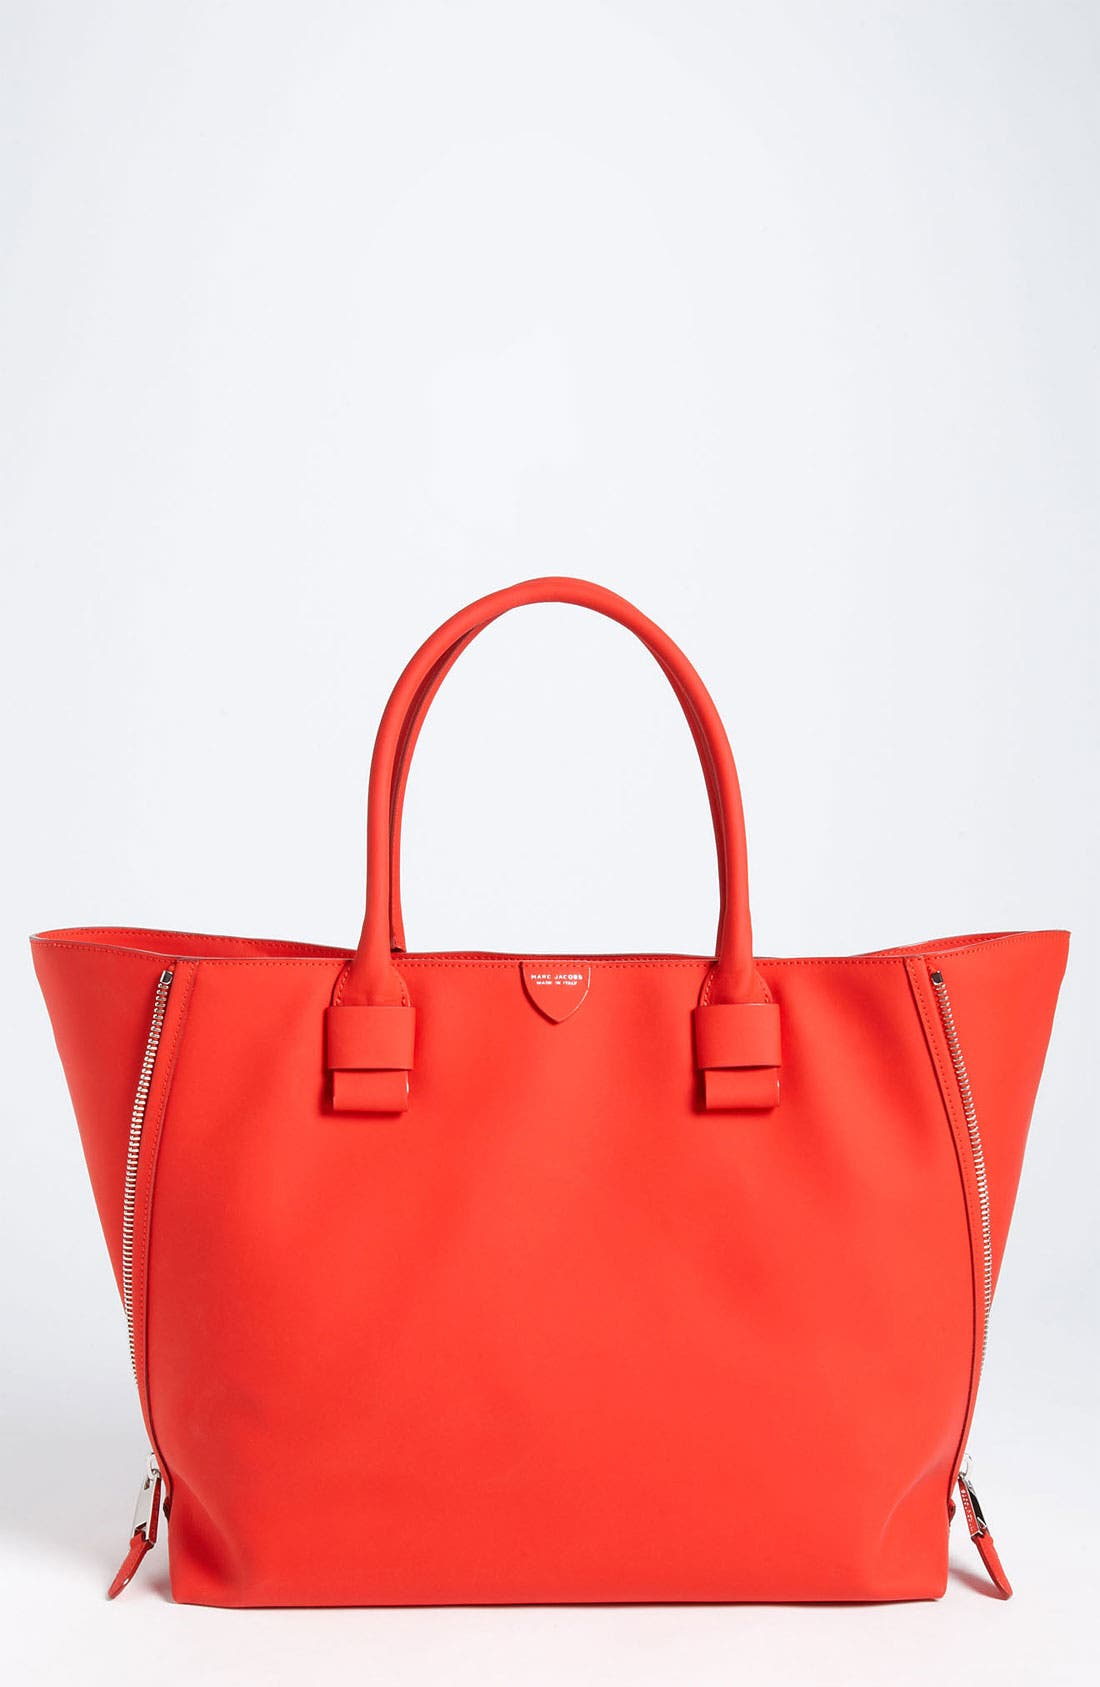 Alternate Image 1 Selected - MARC JACOBS 'Sheila' Rubberized Leather Tote